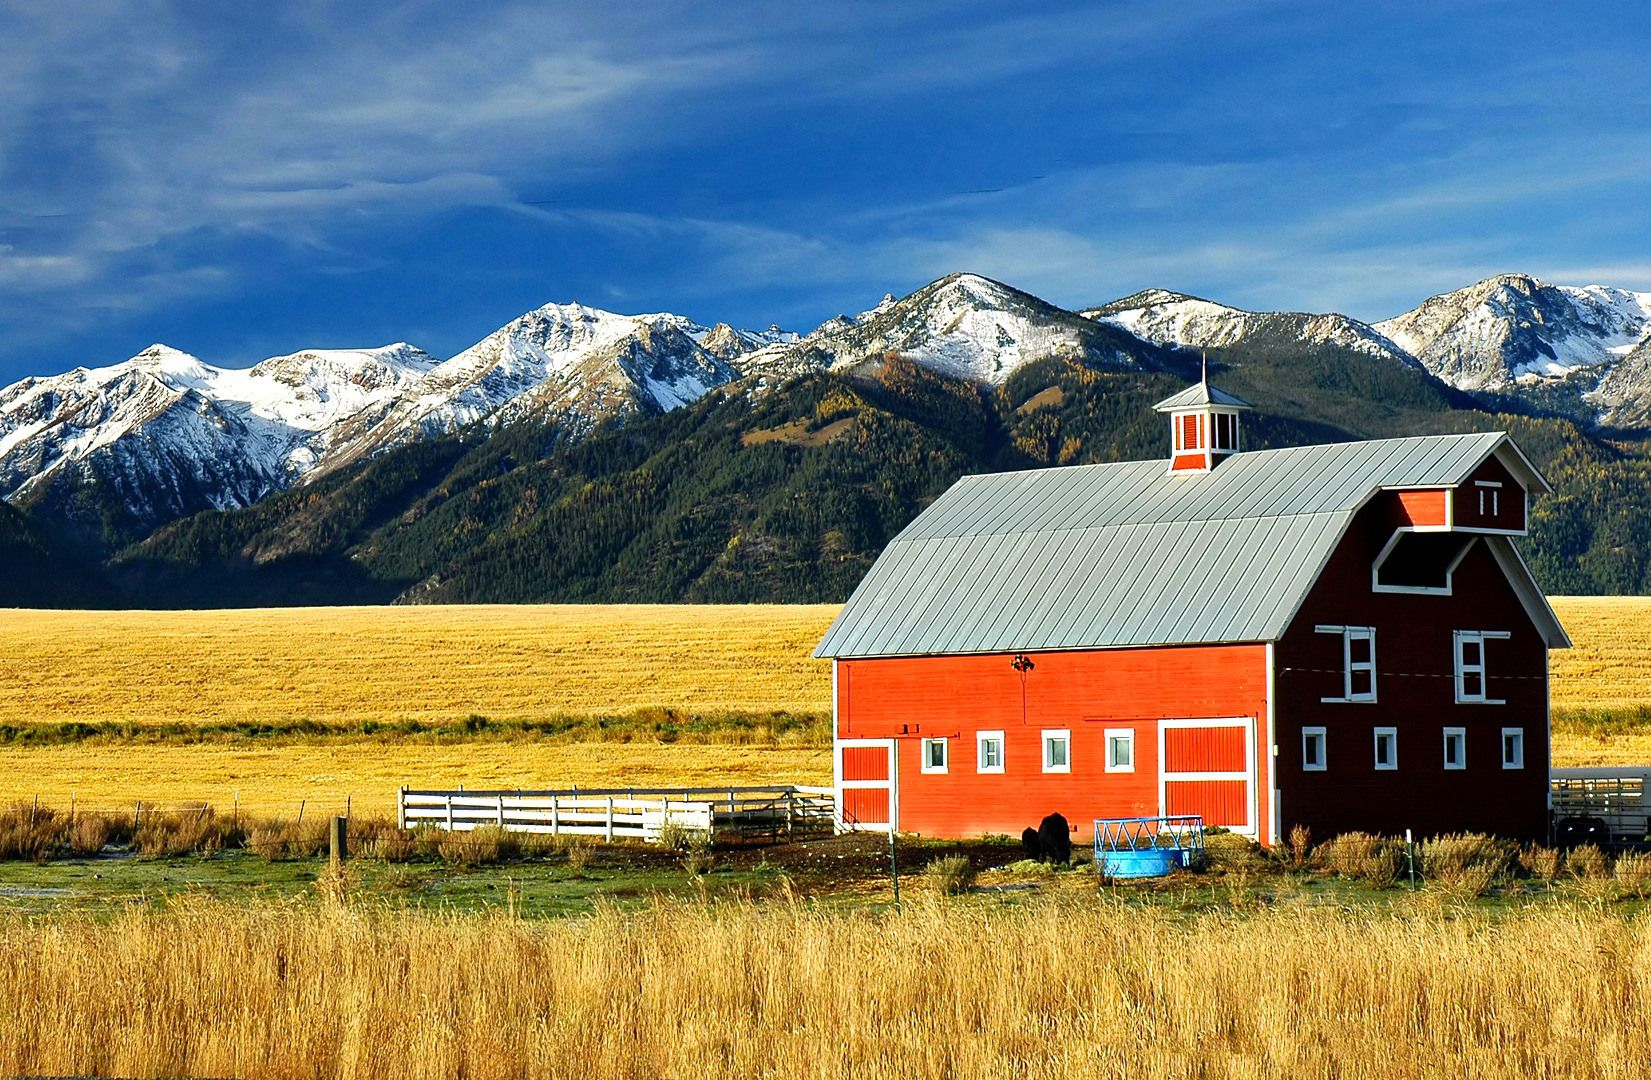 wallowa online dating Wallowa lake lodging | wallowa lake vacation rentals wallowa lake lodging  even after 6 and a half months of dating, today may be the hardest day.